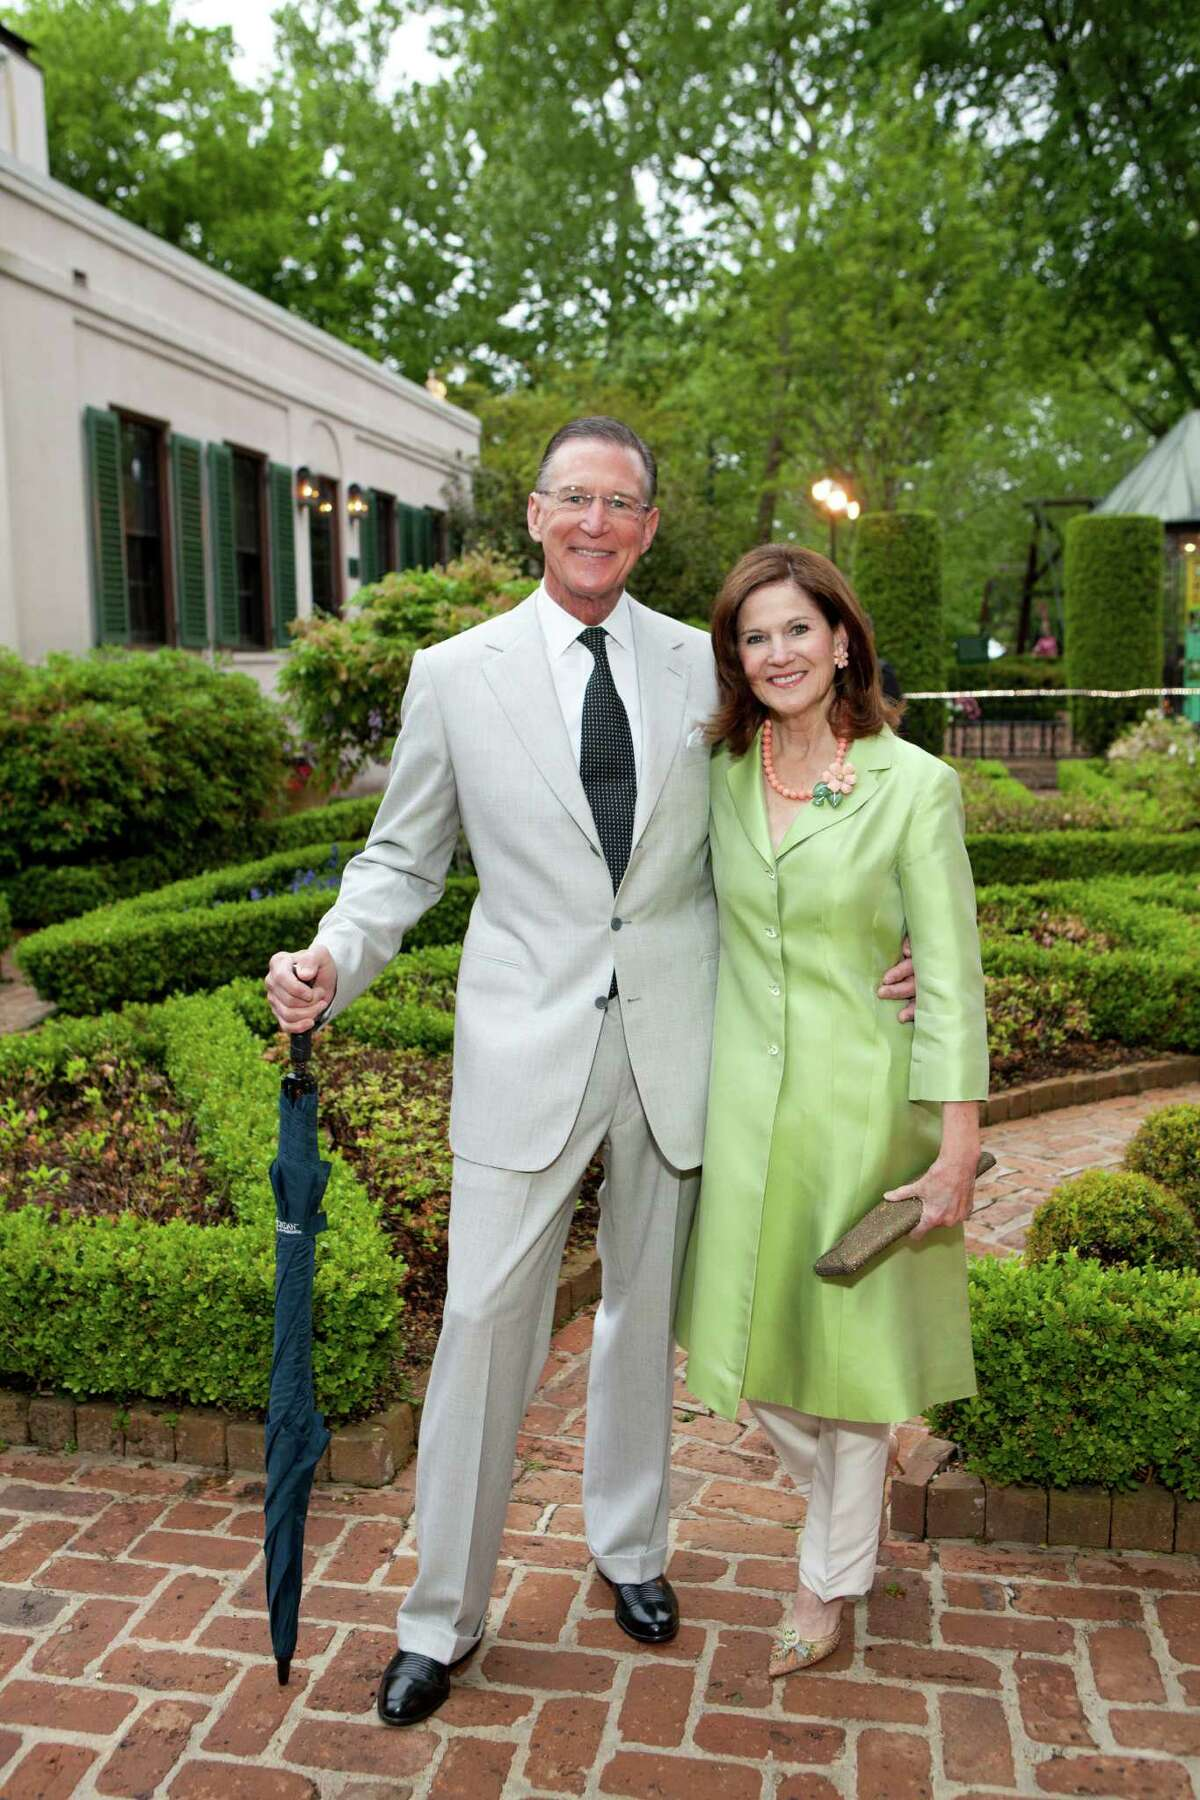 Houstonians Charles and Judy Tate, shown at the 2014 Bayou Bend Garden Party, have donated their collection of about 120 Latin American artworks to the Blanton Museum of Art at the University of Texas-Austin. About 10 percent of their $10 million gift will add to an endowment for the museum's Latin American curatorship.